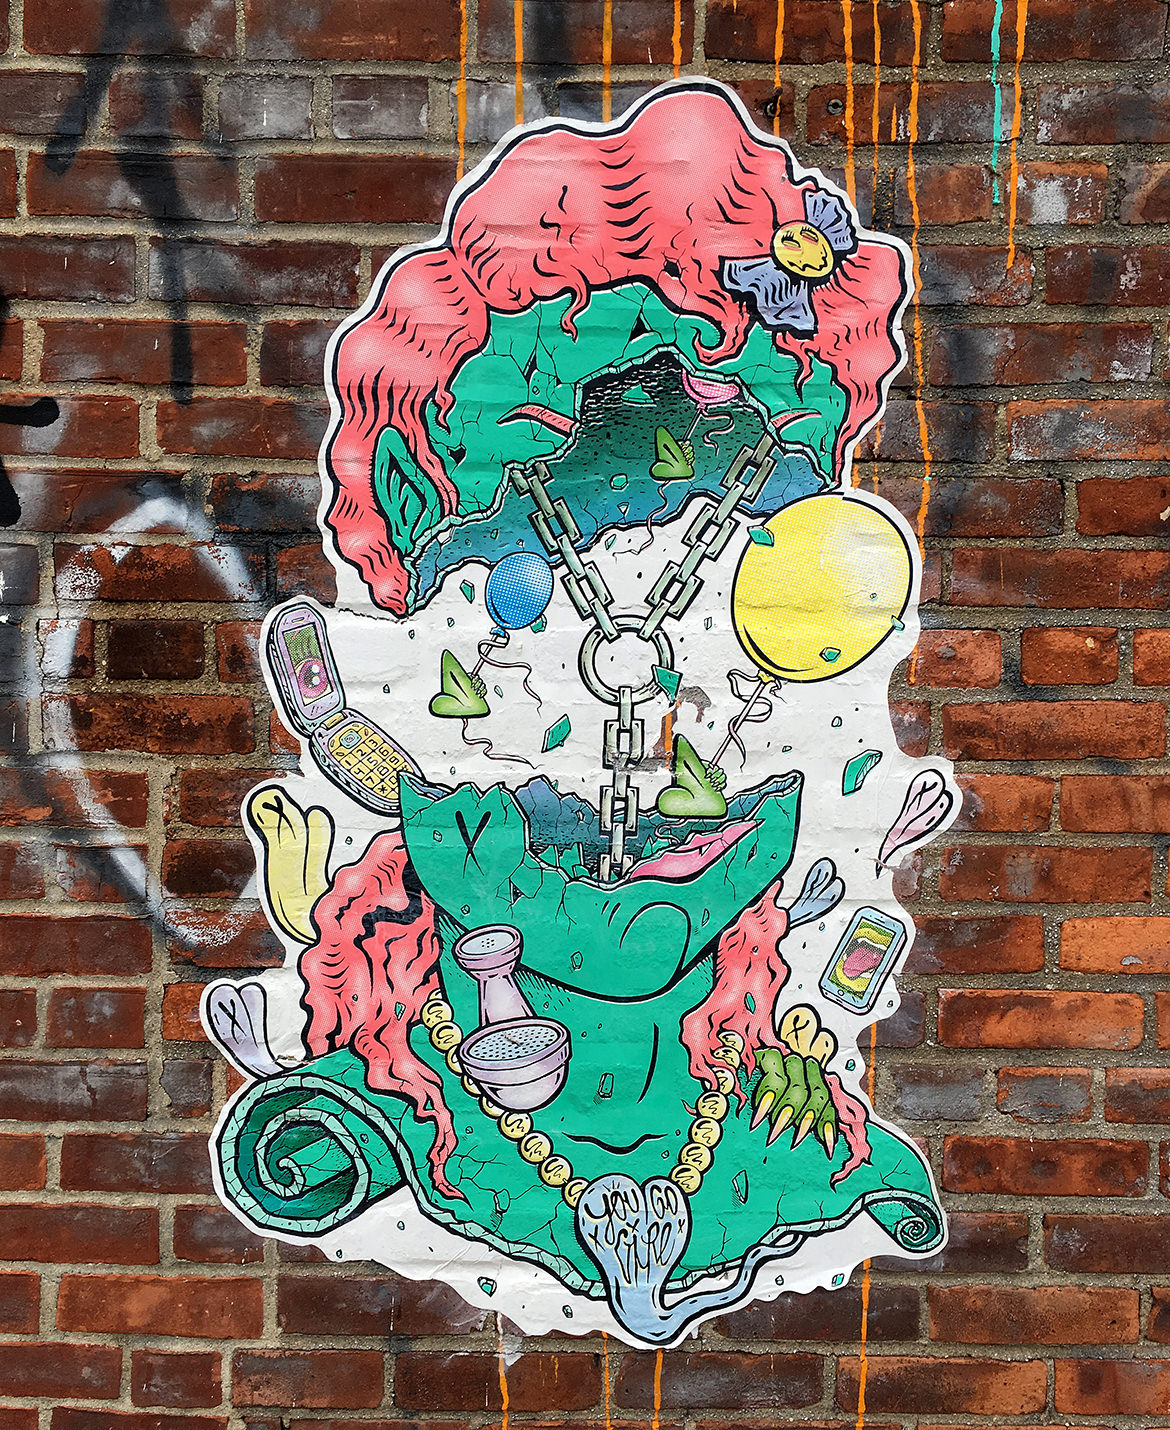 Chain head paste up